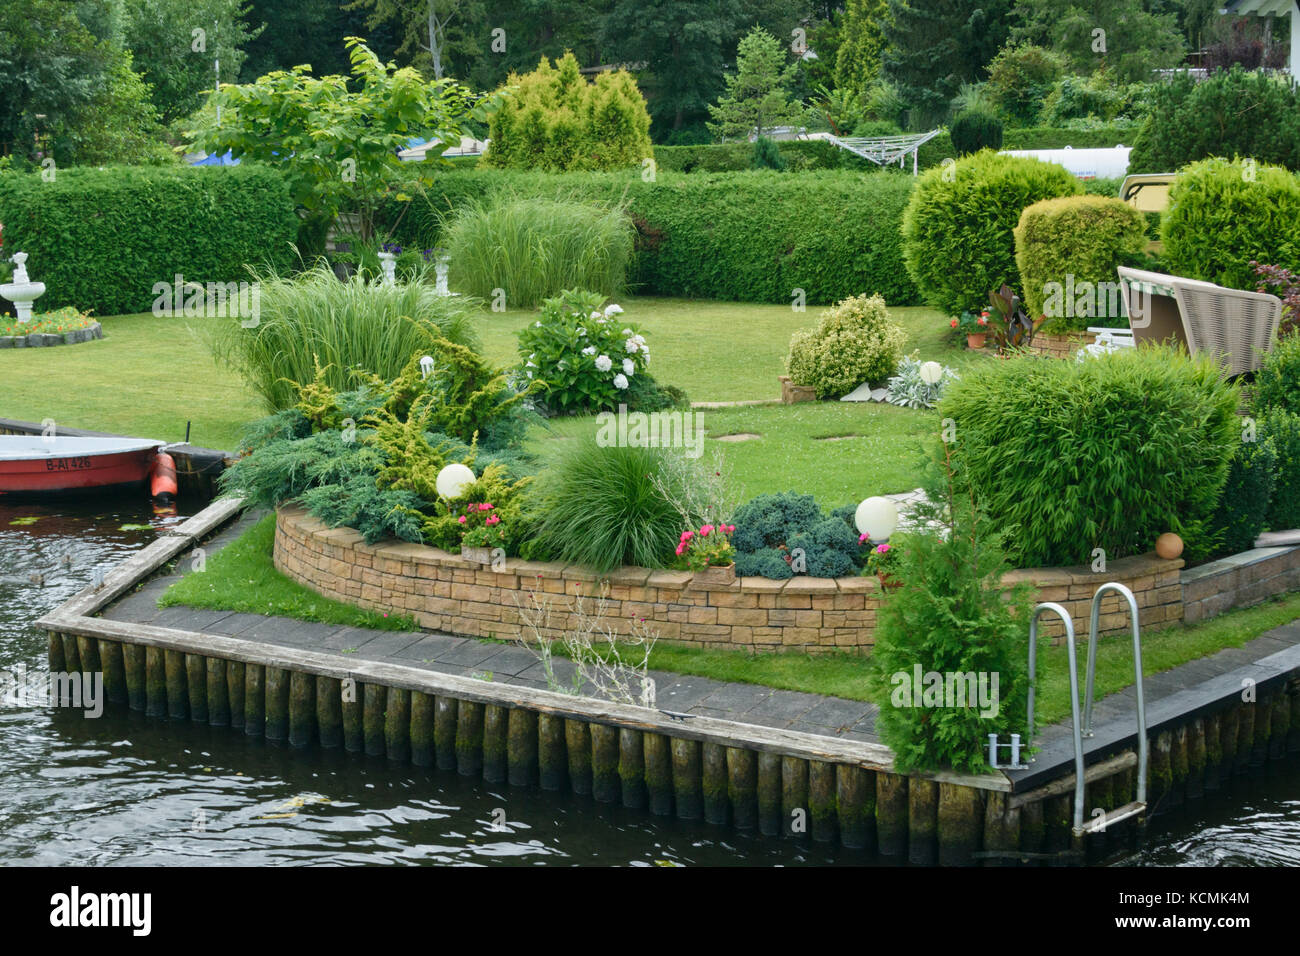 Garden on a water property - Stock Image